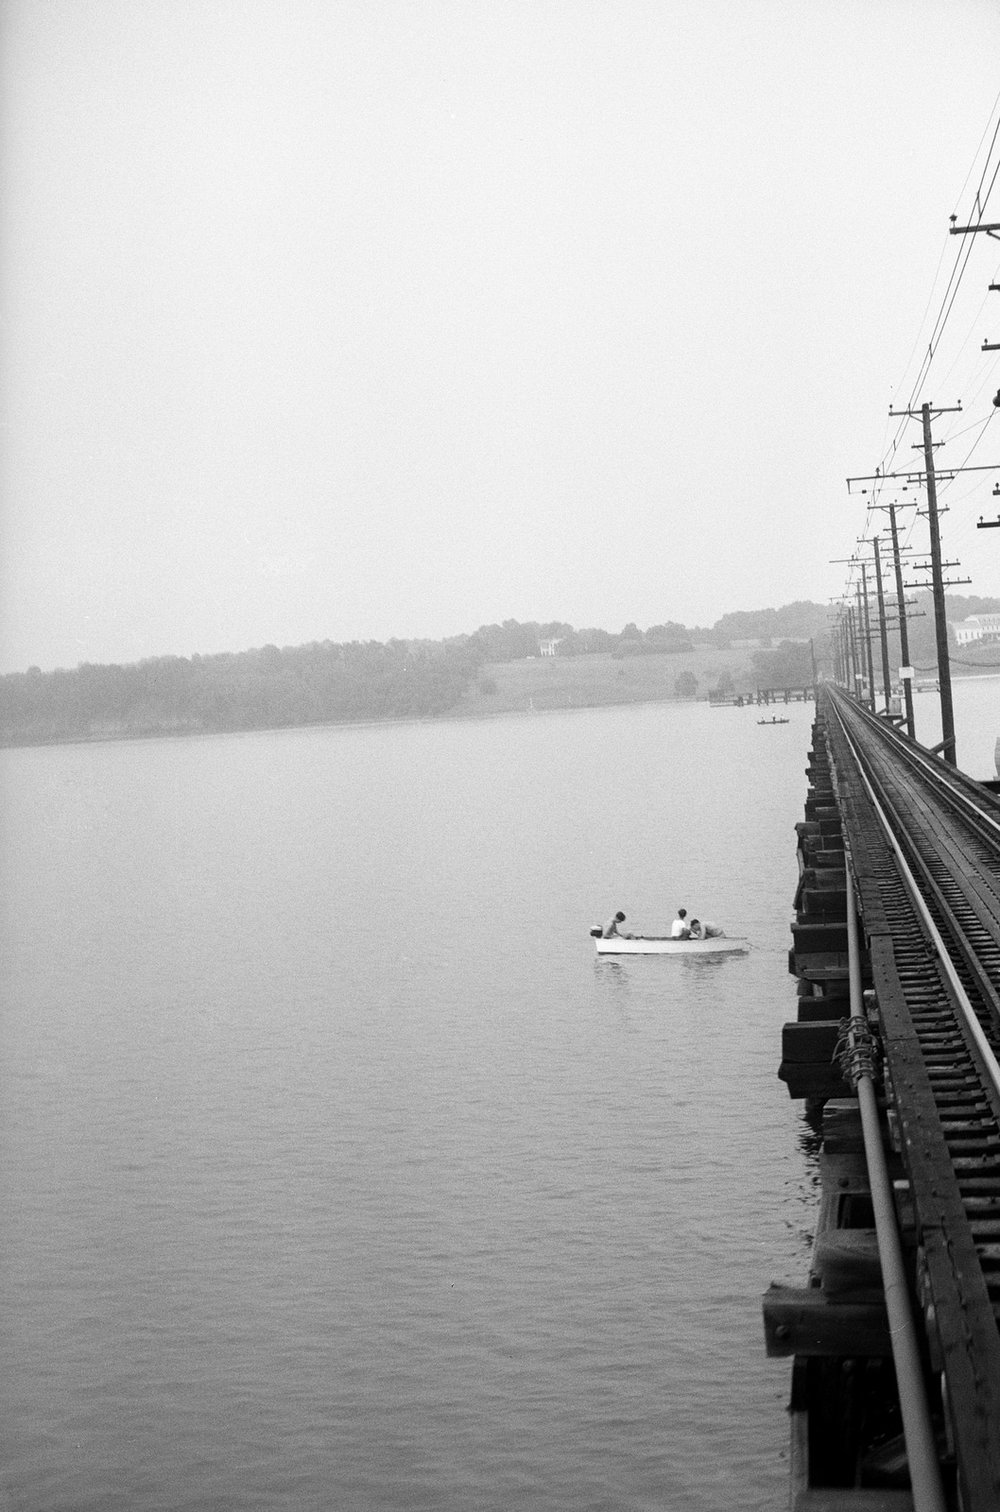 Baltimore & Annapolis Railroad Car crossing the Severn River Bridge. Looking towards the North Shore, Manresa can be seen to the right. Annapolis, Maryland. Circa 1940's. Source: Hugh Hayes Collection.